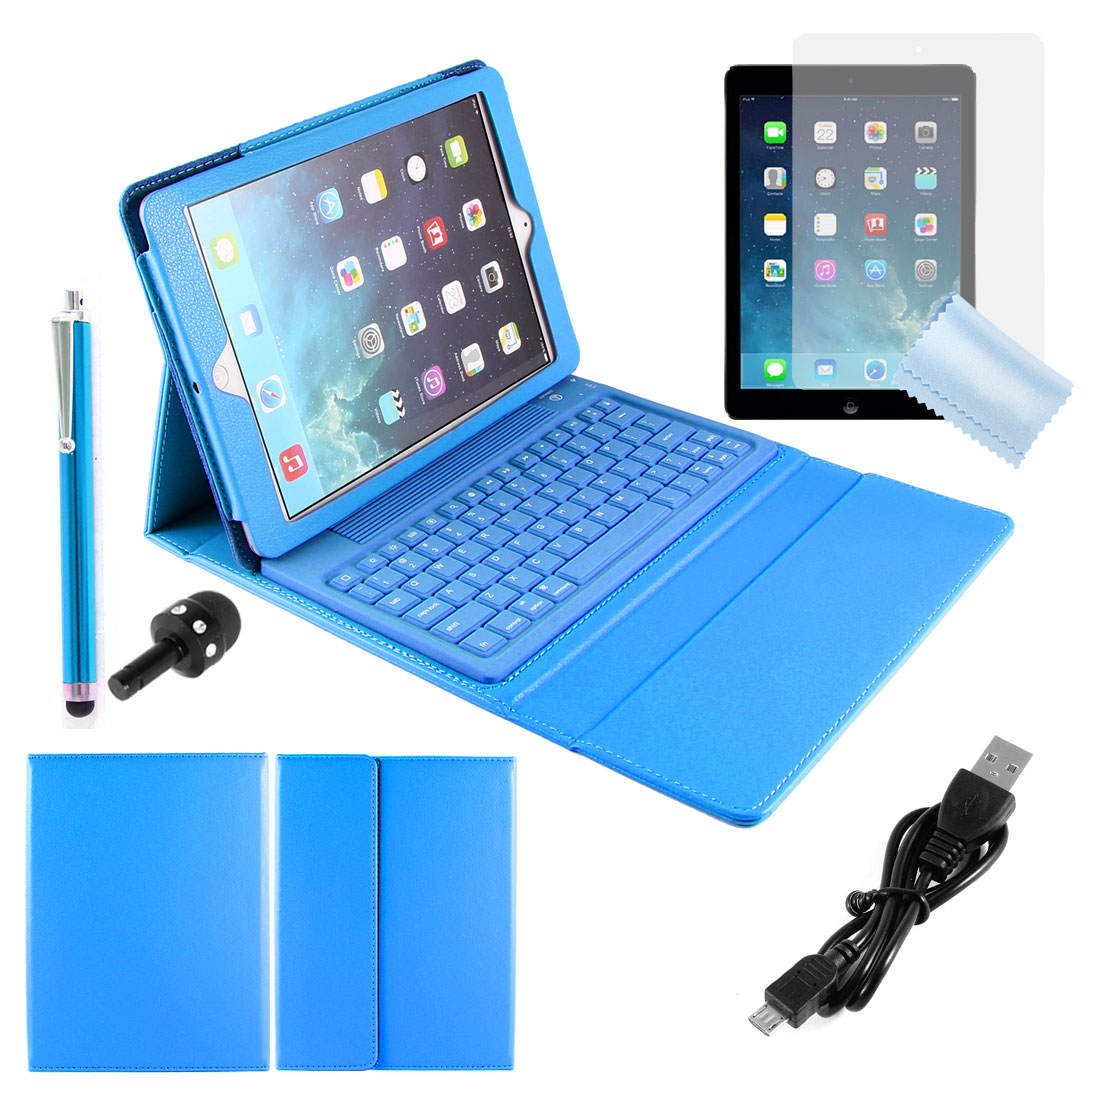 Blue bluetooth Keyboard Stand Case + 3.5mm Ear Cap + Stylus Pen for iPad Air 5